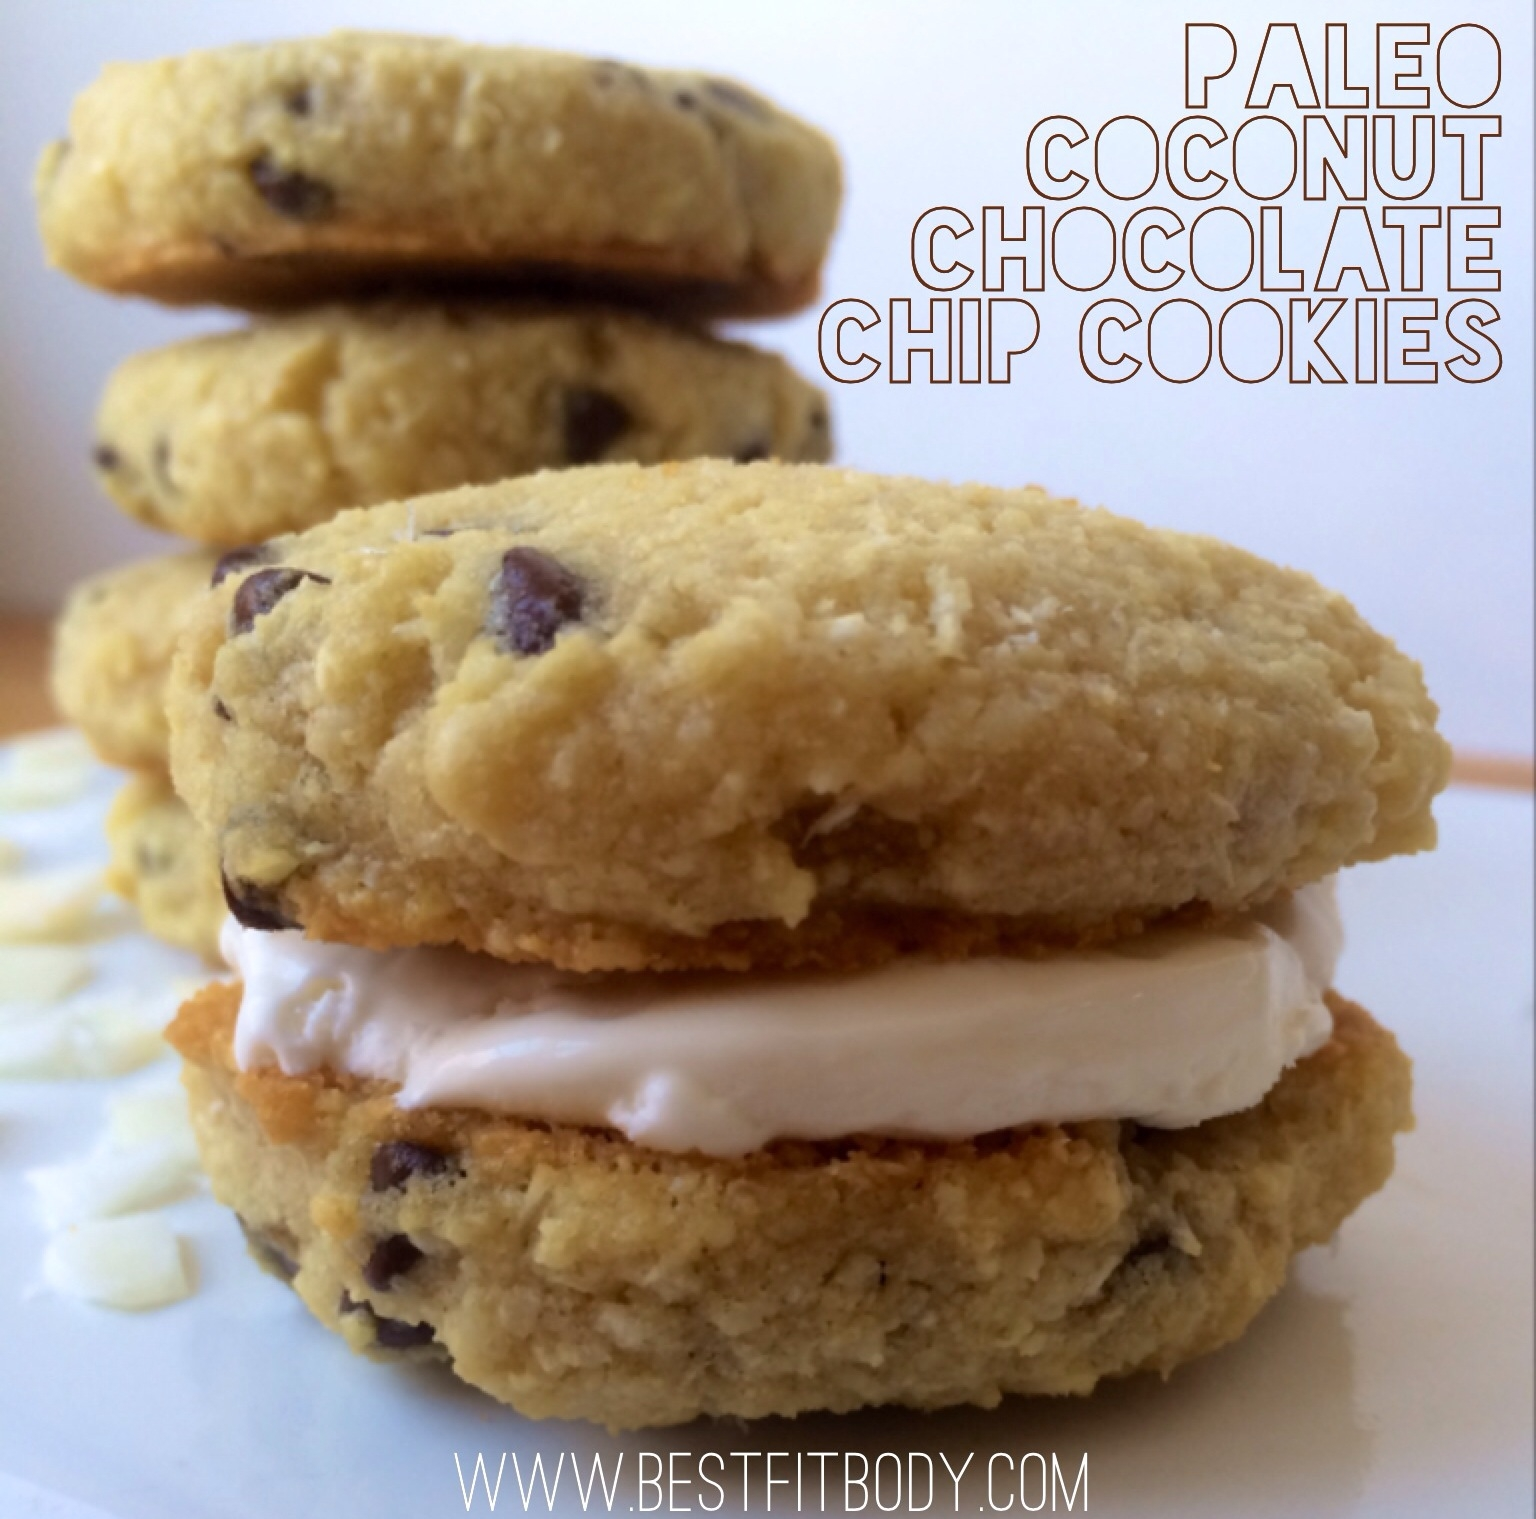 Ripped Recipes - Paleo Coconut Chocolate Chip Cookies